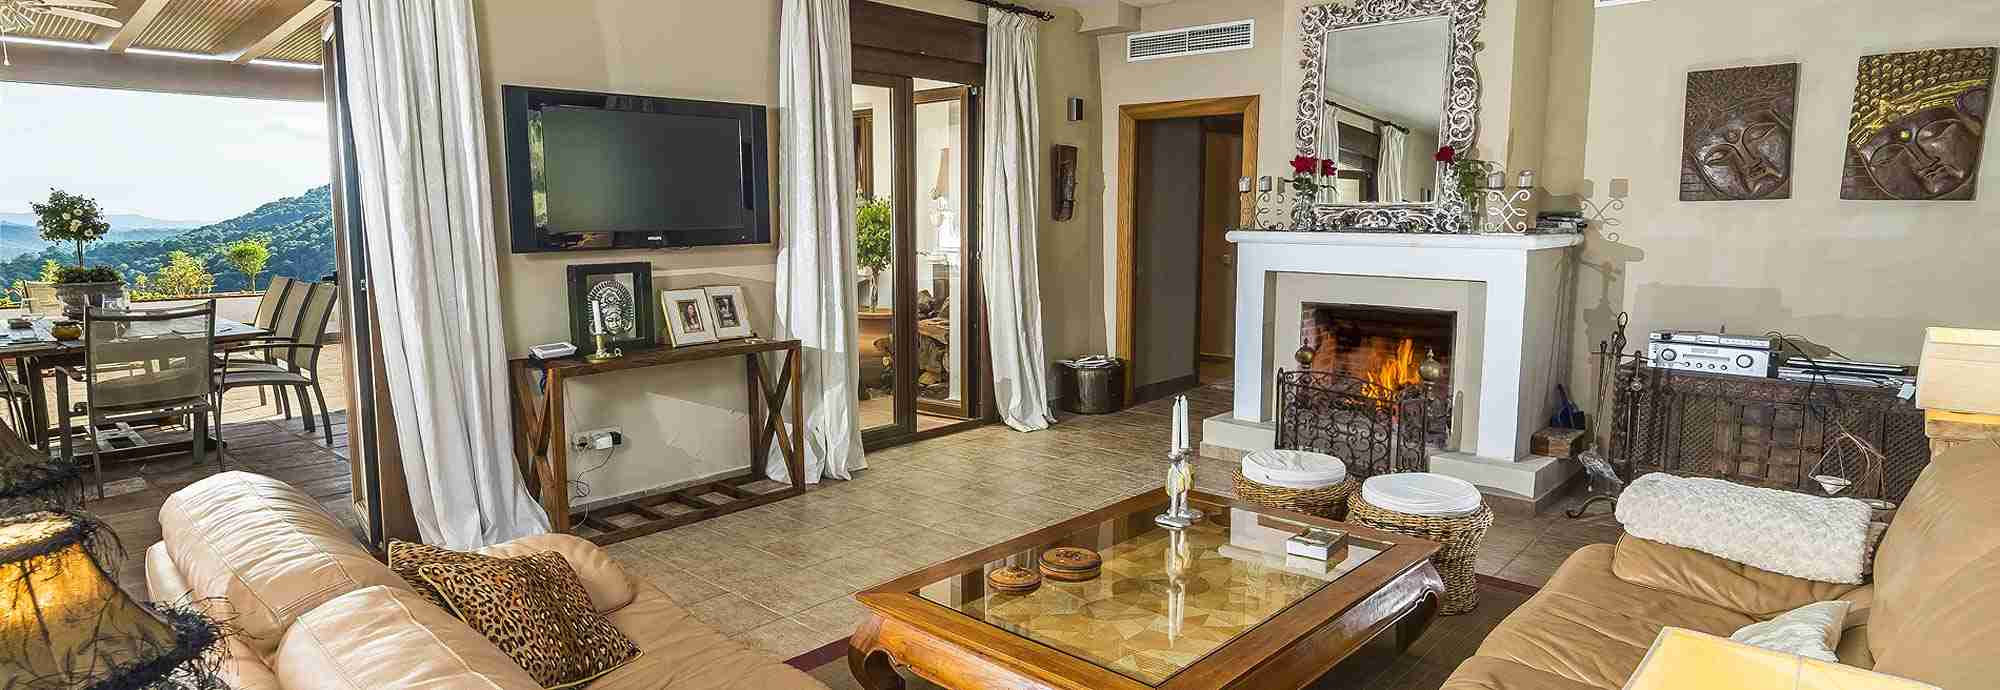 Large Holiday  Villas in Andalucia with Wifi